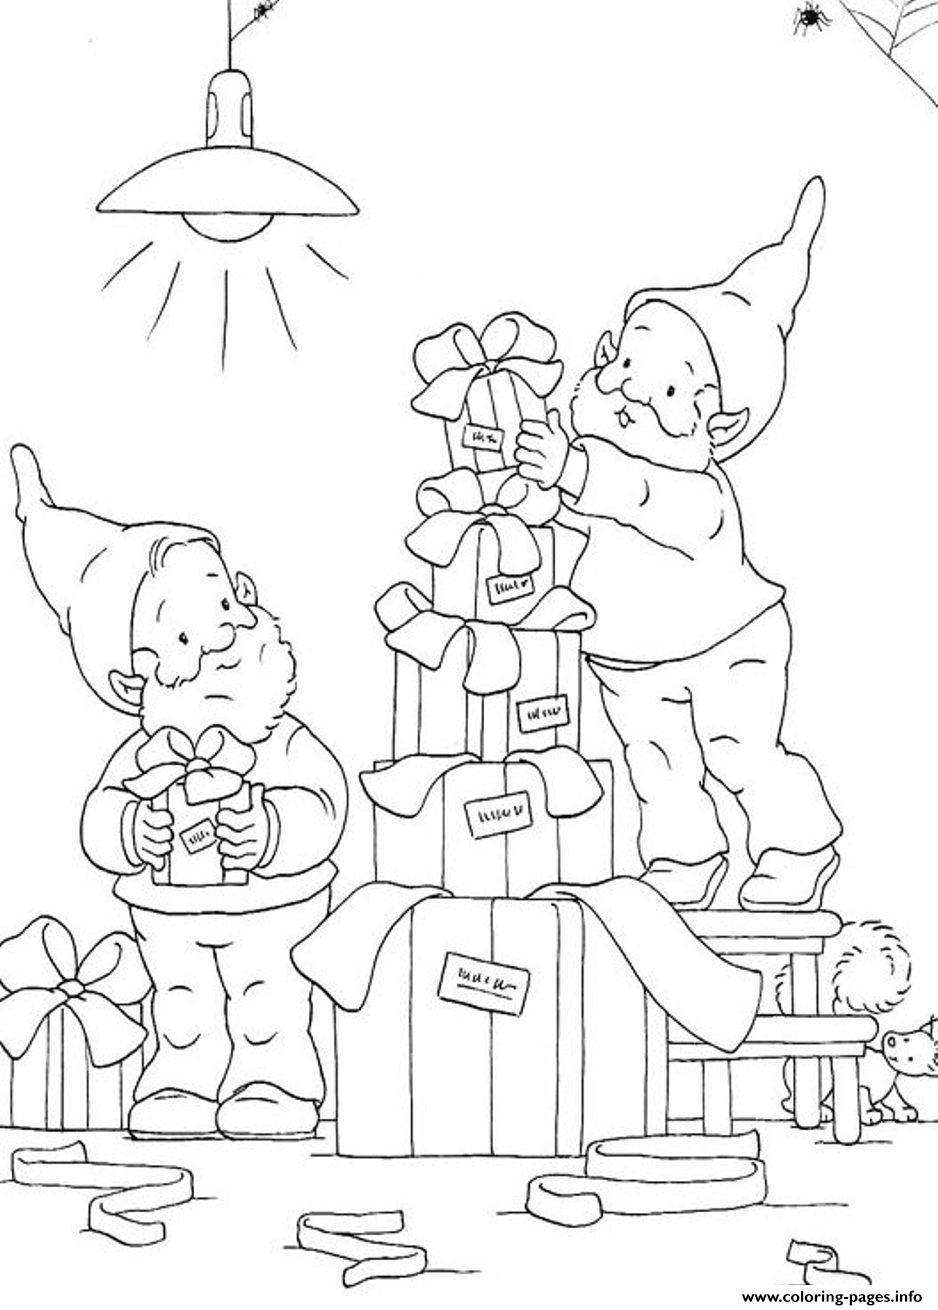 Printable S Christmas Elves Preparing Some Presents5fa7 Coloring ...